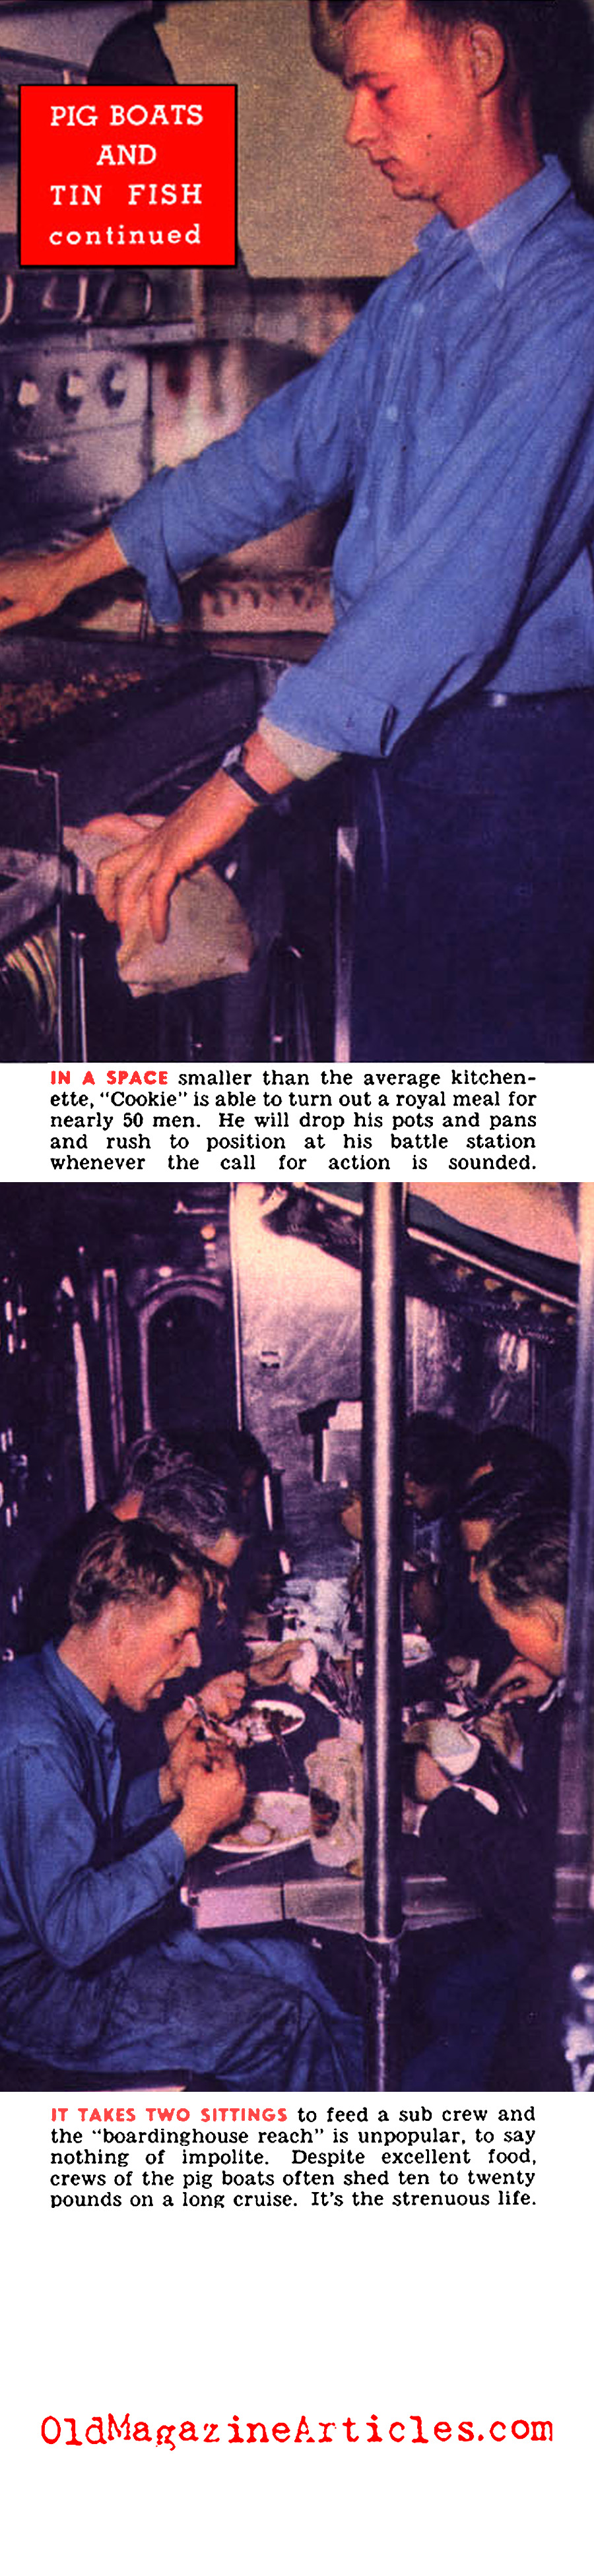 Life on a U.S. Navy Sub (Click Magazine, 1943)